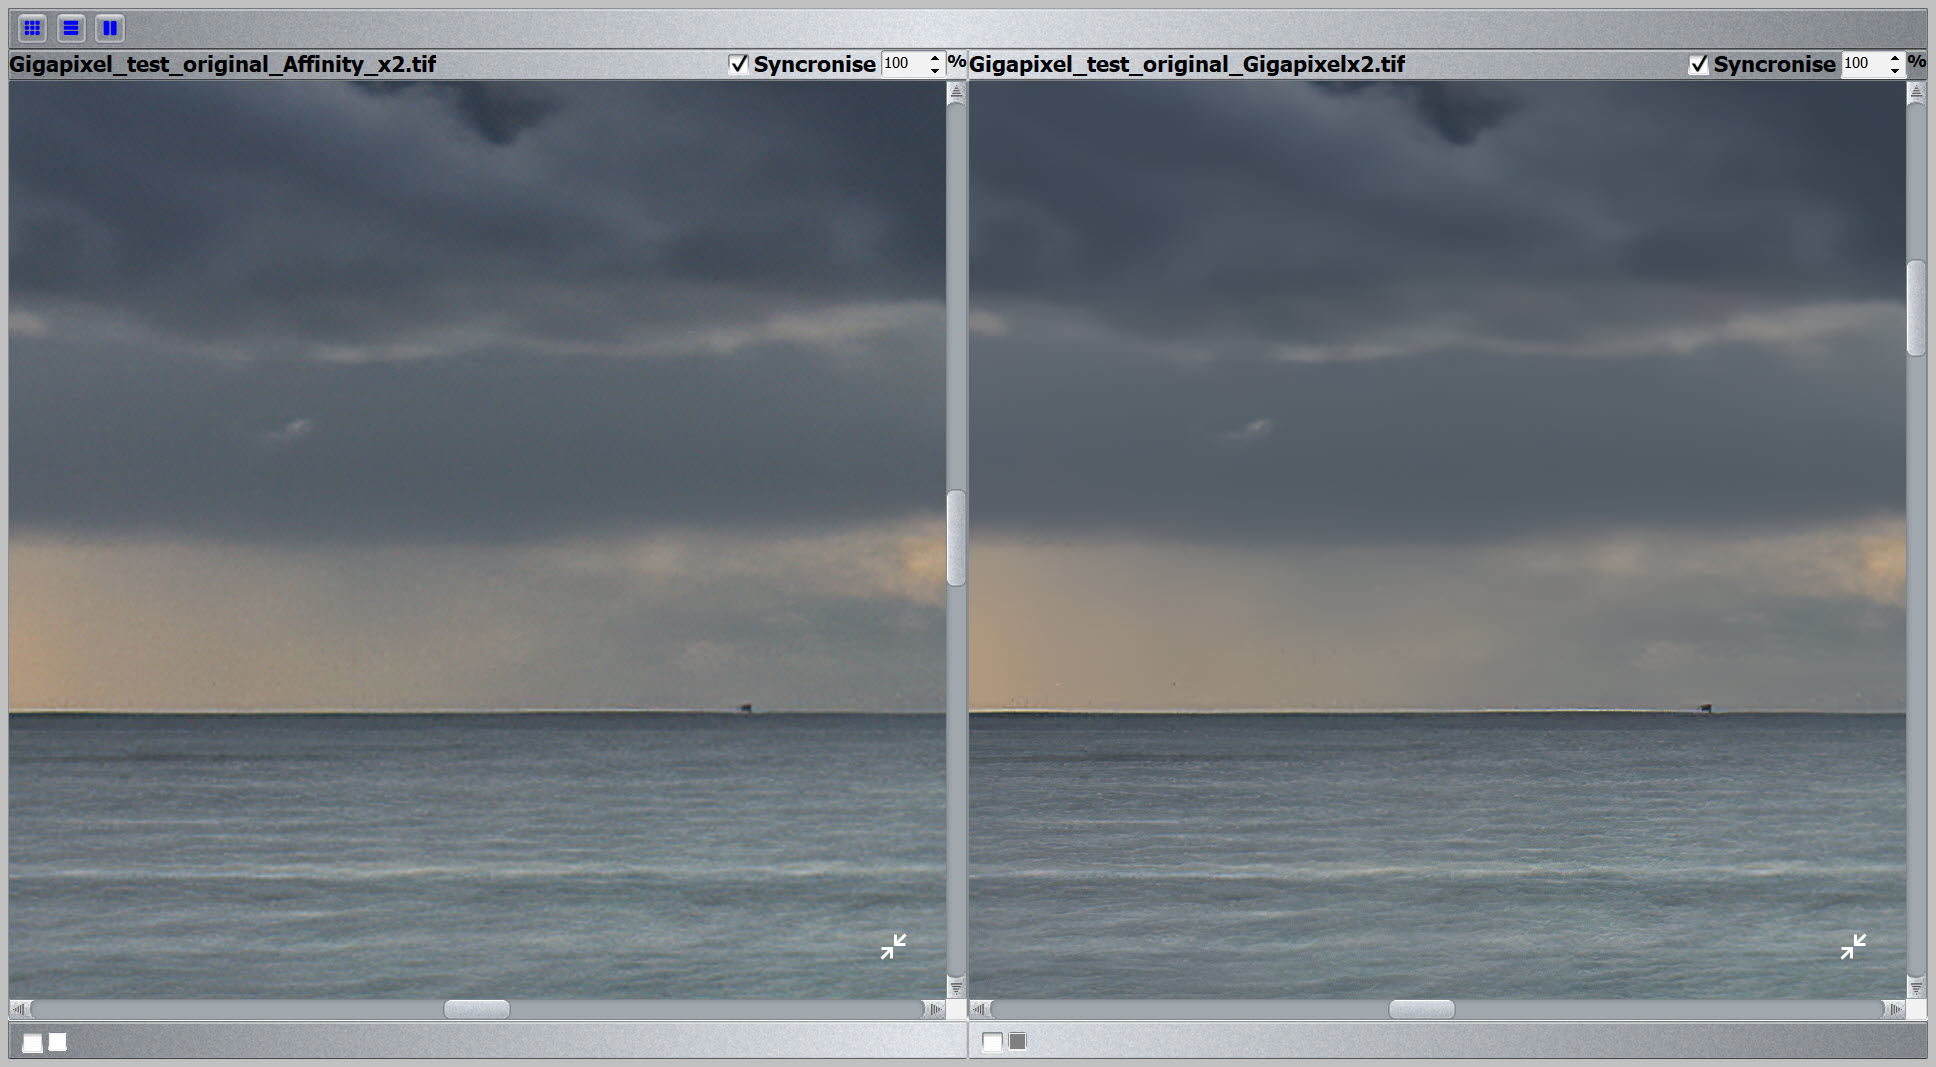 Gigapixel vs Bicubic 200% test